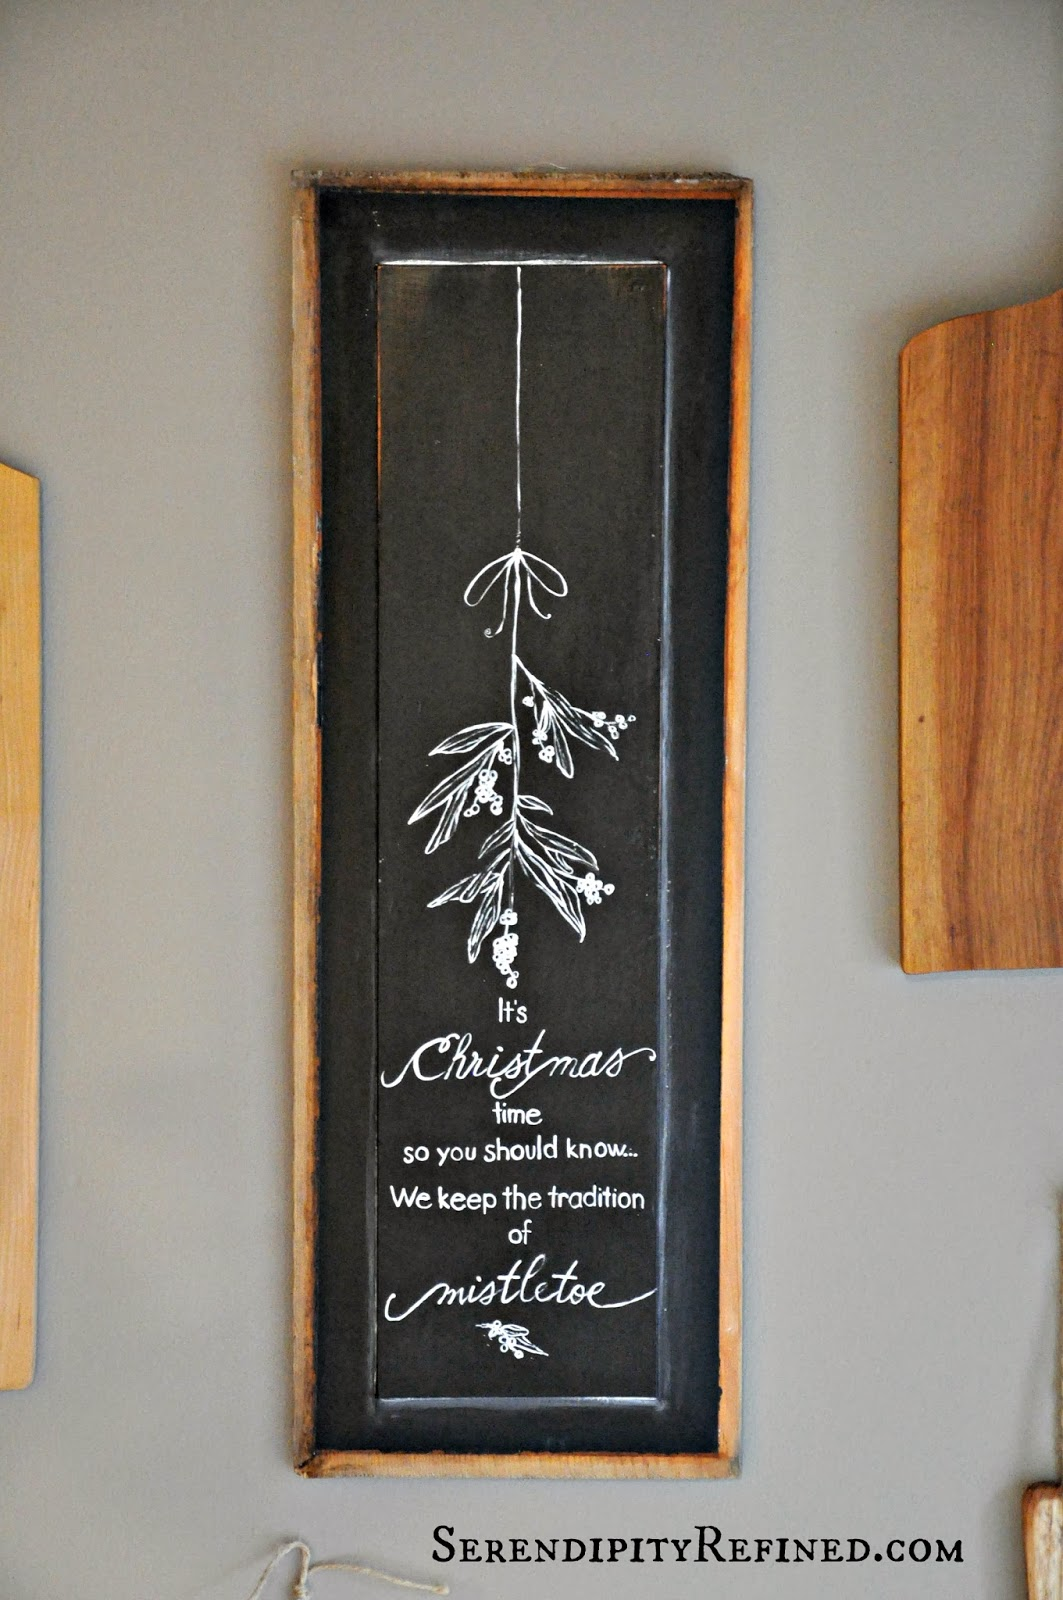 Serendipity Refined Blog: Christmas Chalkboard Wall Art